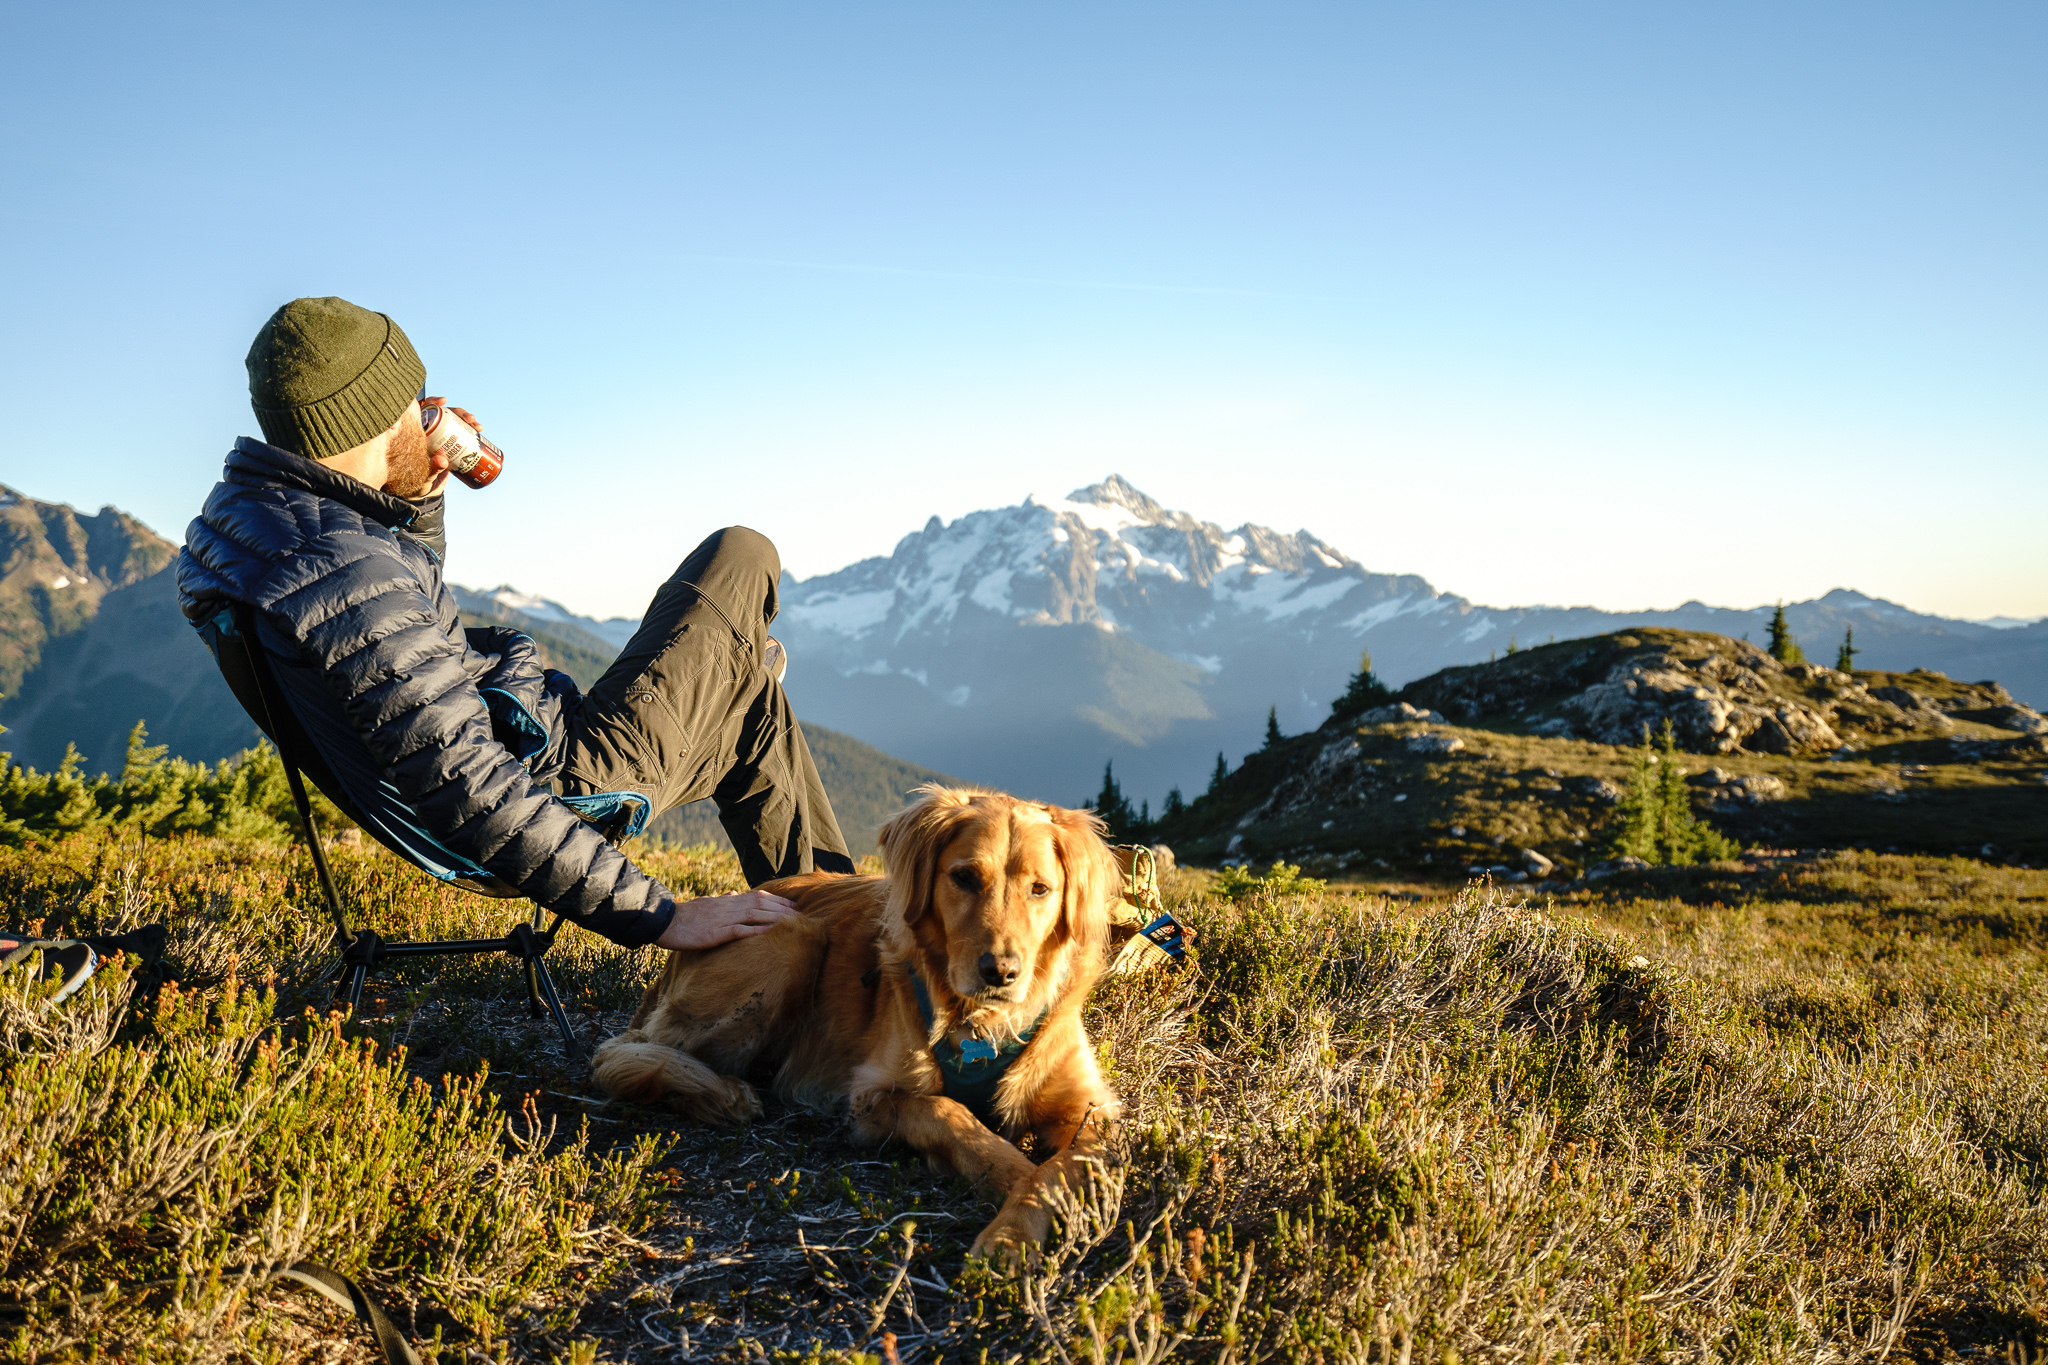 Beer, cute dog, good mountains. Nothing better.